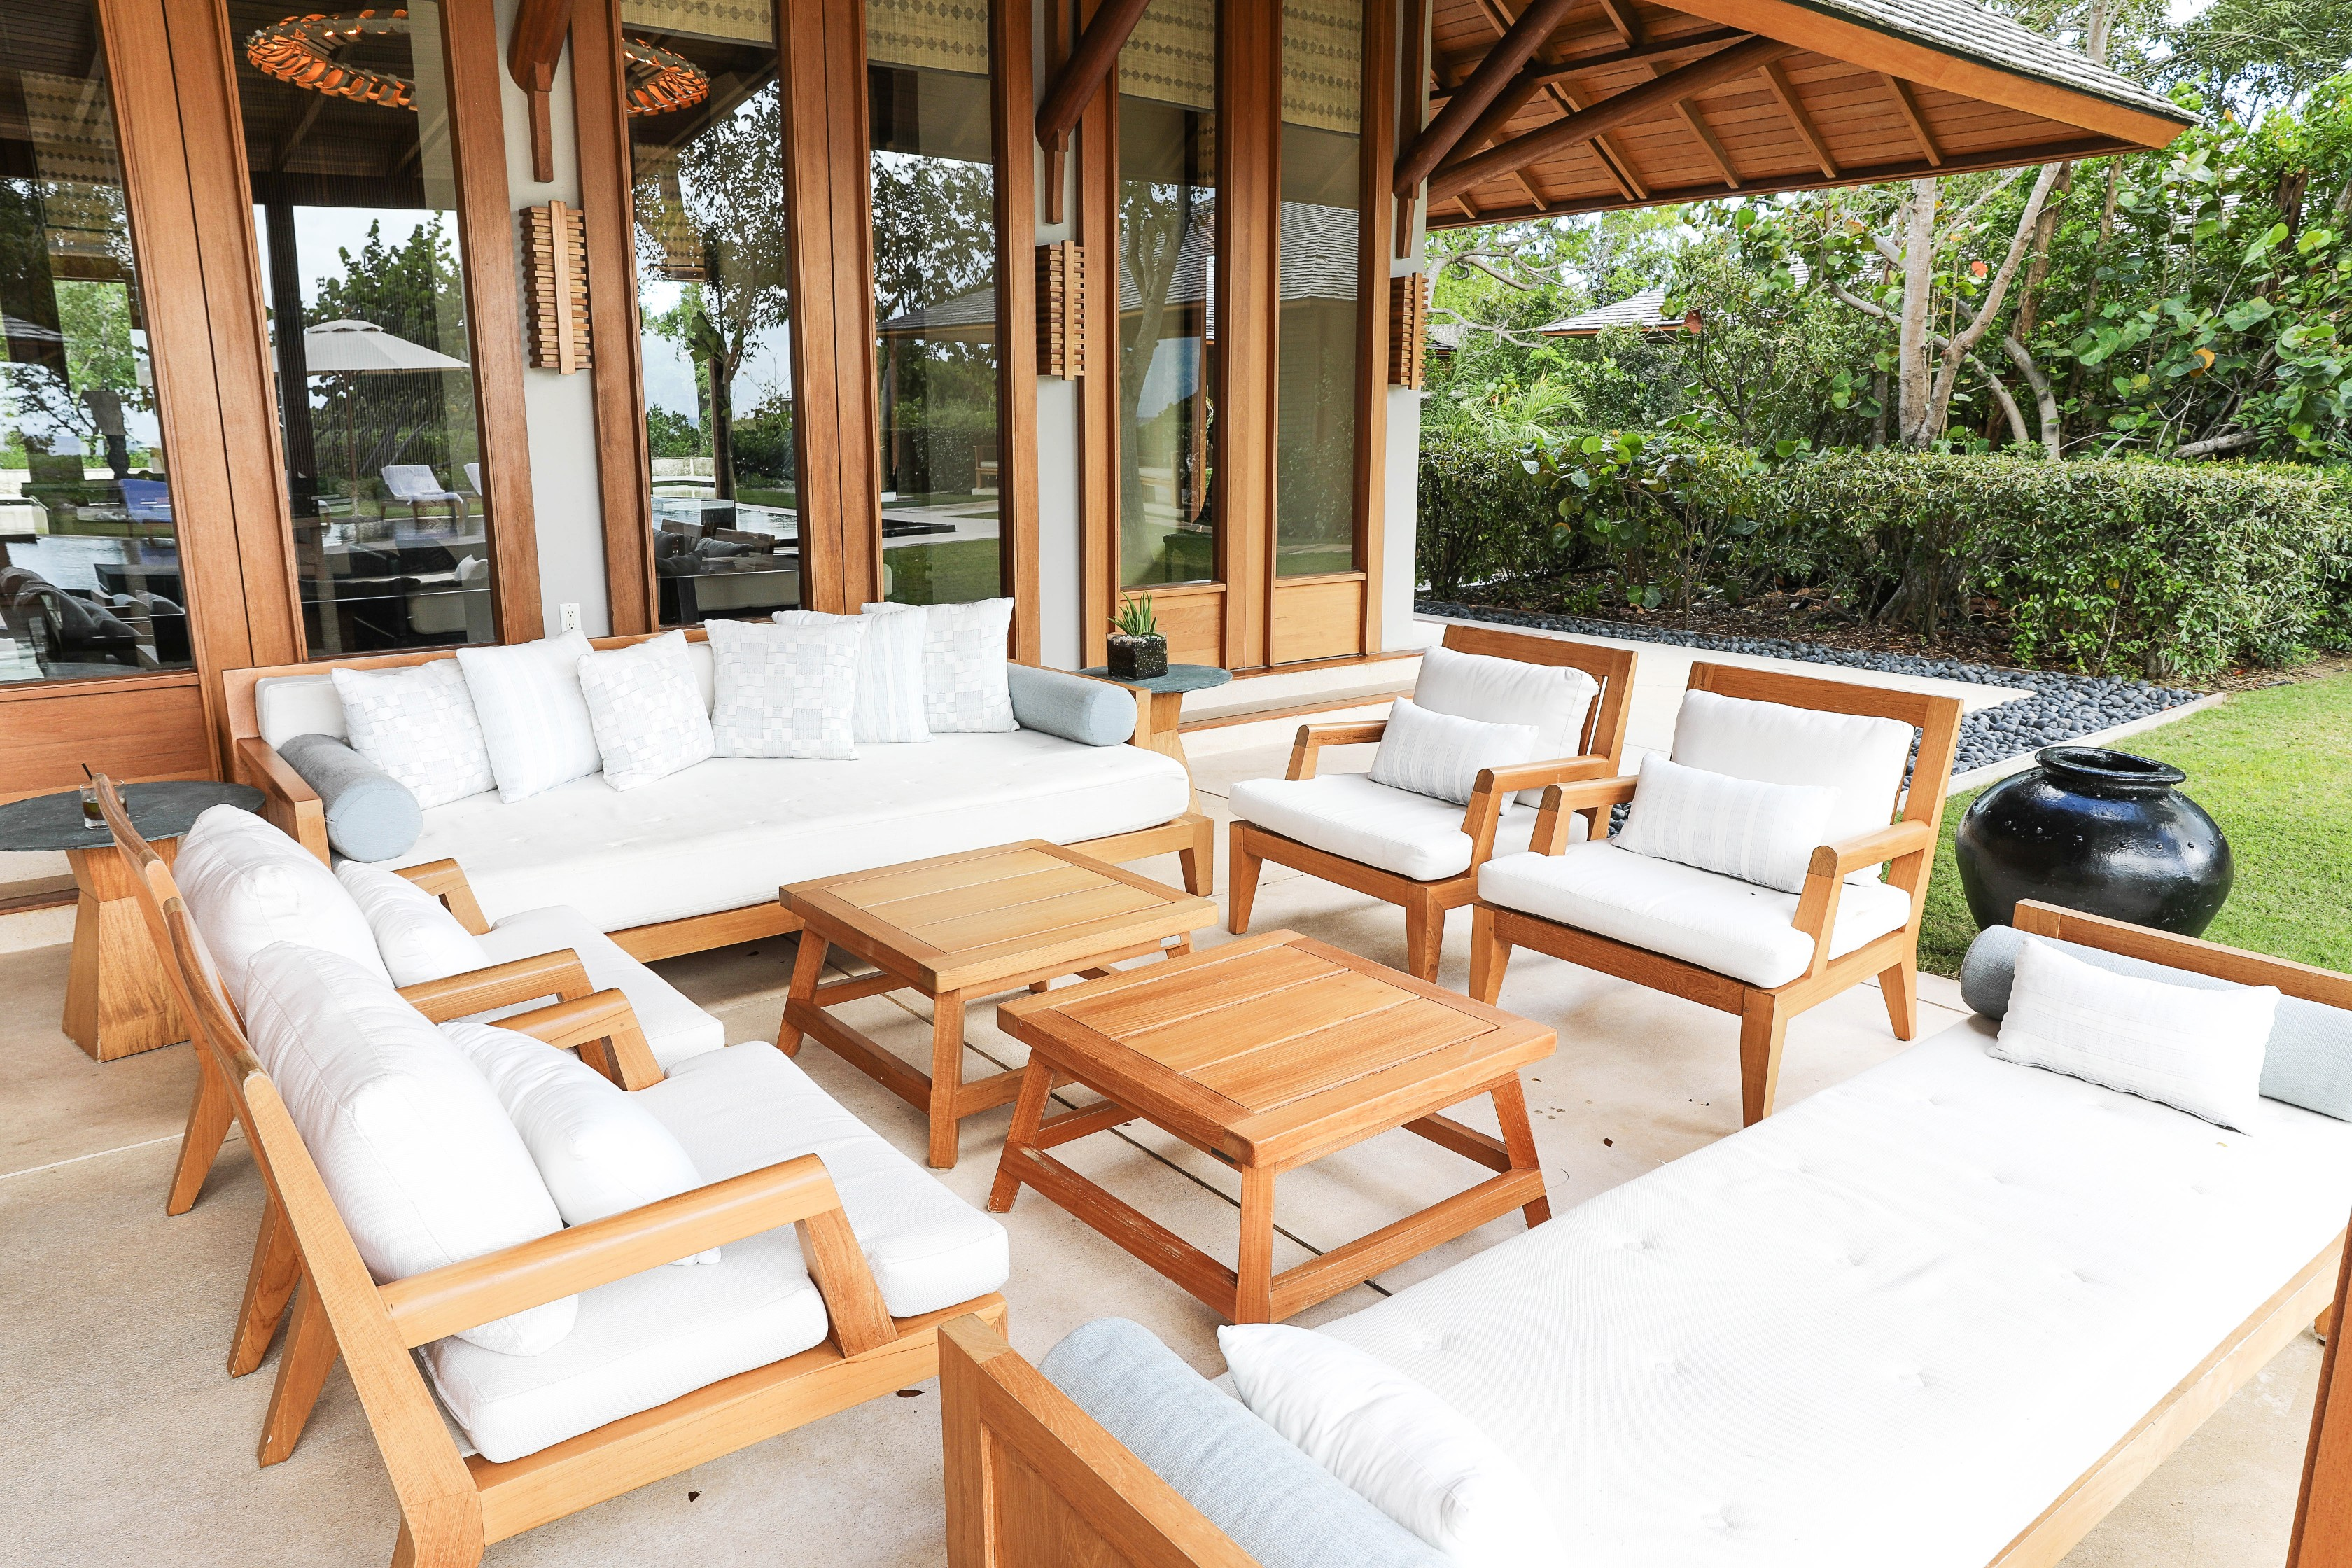 Turks and Caicos Amanyara hotel villa tour! The most beautiful six bedroom island home in the Caribbean! A really fun spring break destination at a luxury resort! Details on travel, fashion, and lifestyle blog daily dose of charm by lauren lindmark